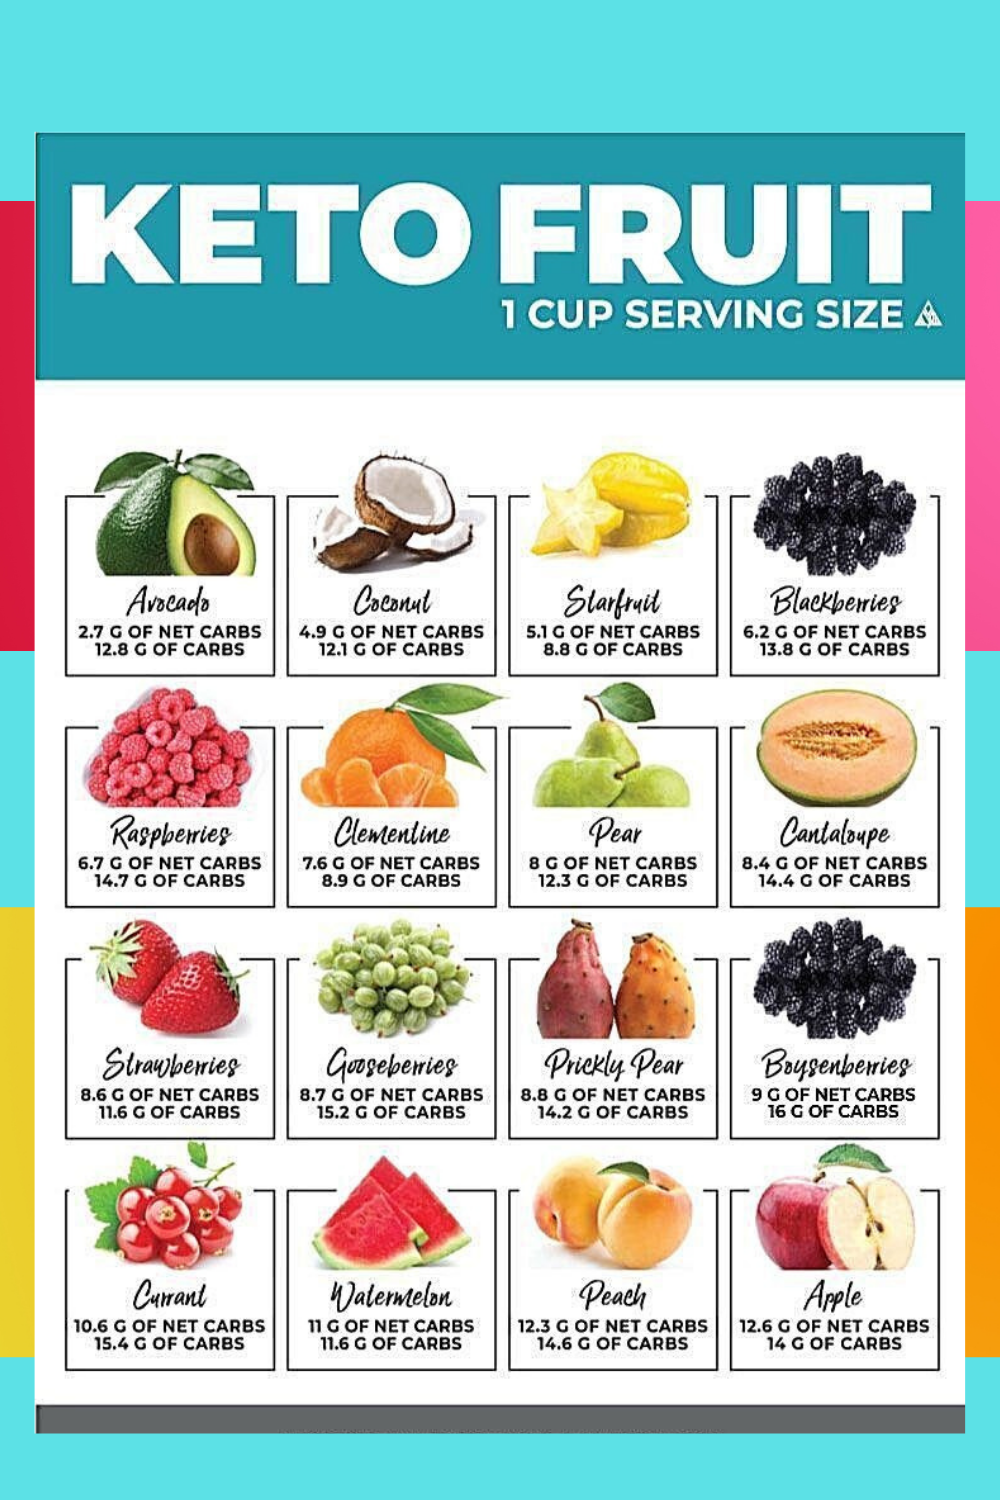 Fruits And Berries The Best Fruits On A Keto Diet Diet Doctor Keto Fruit Low Carb Fruit Keto Diet Food List